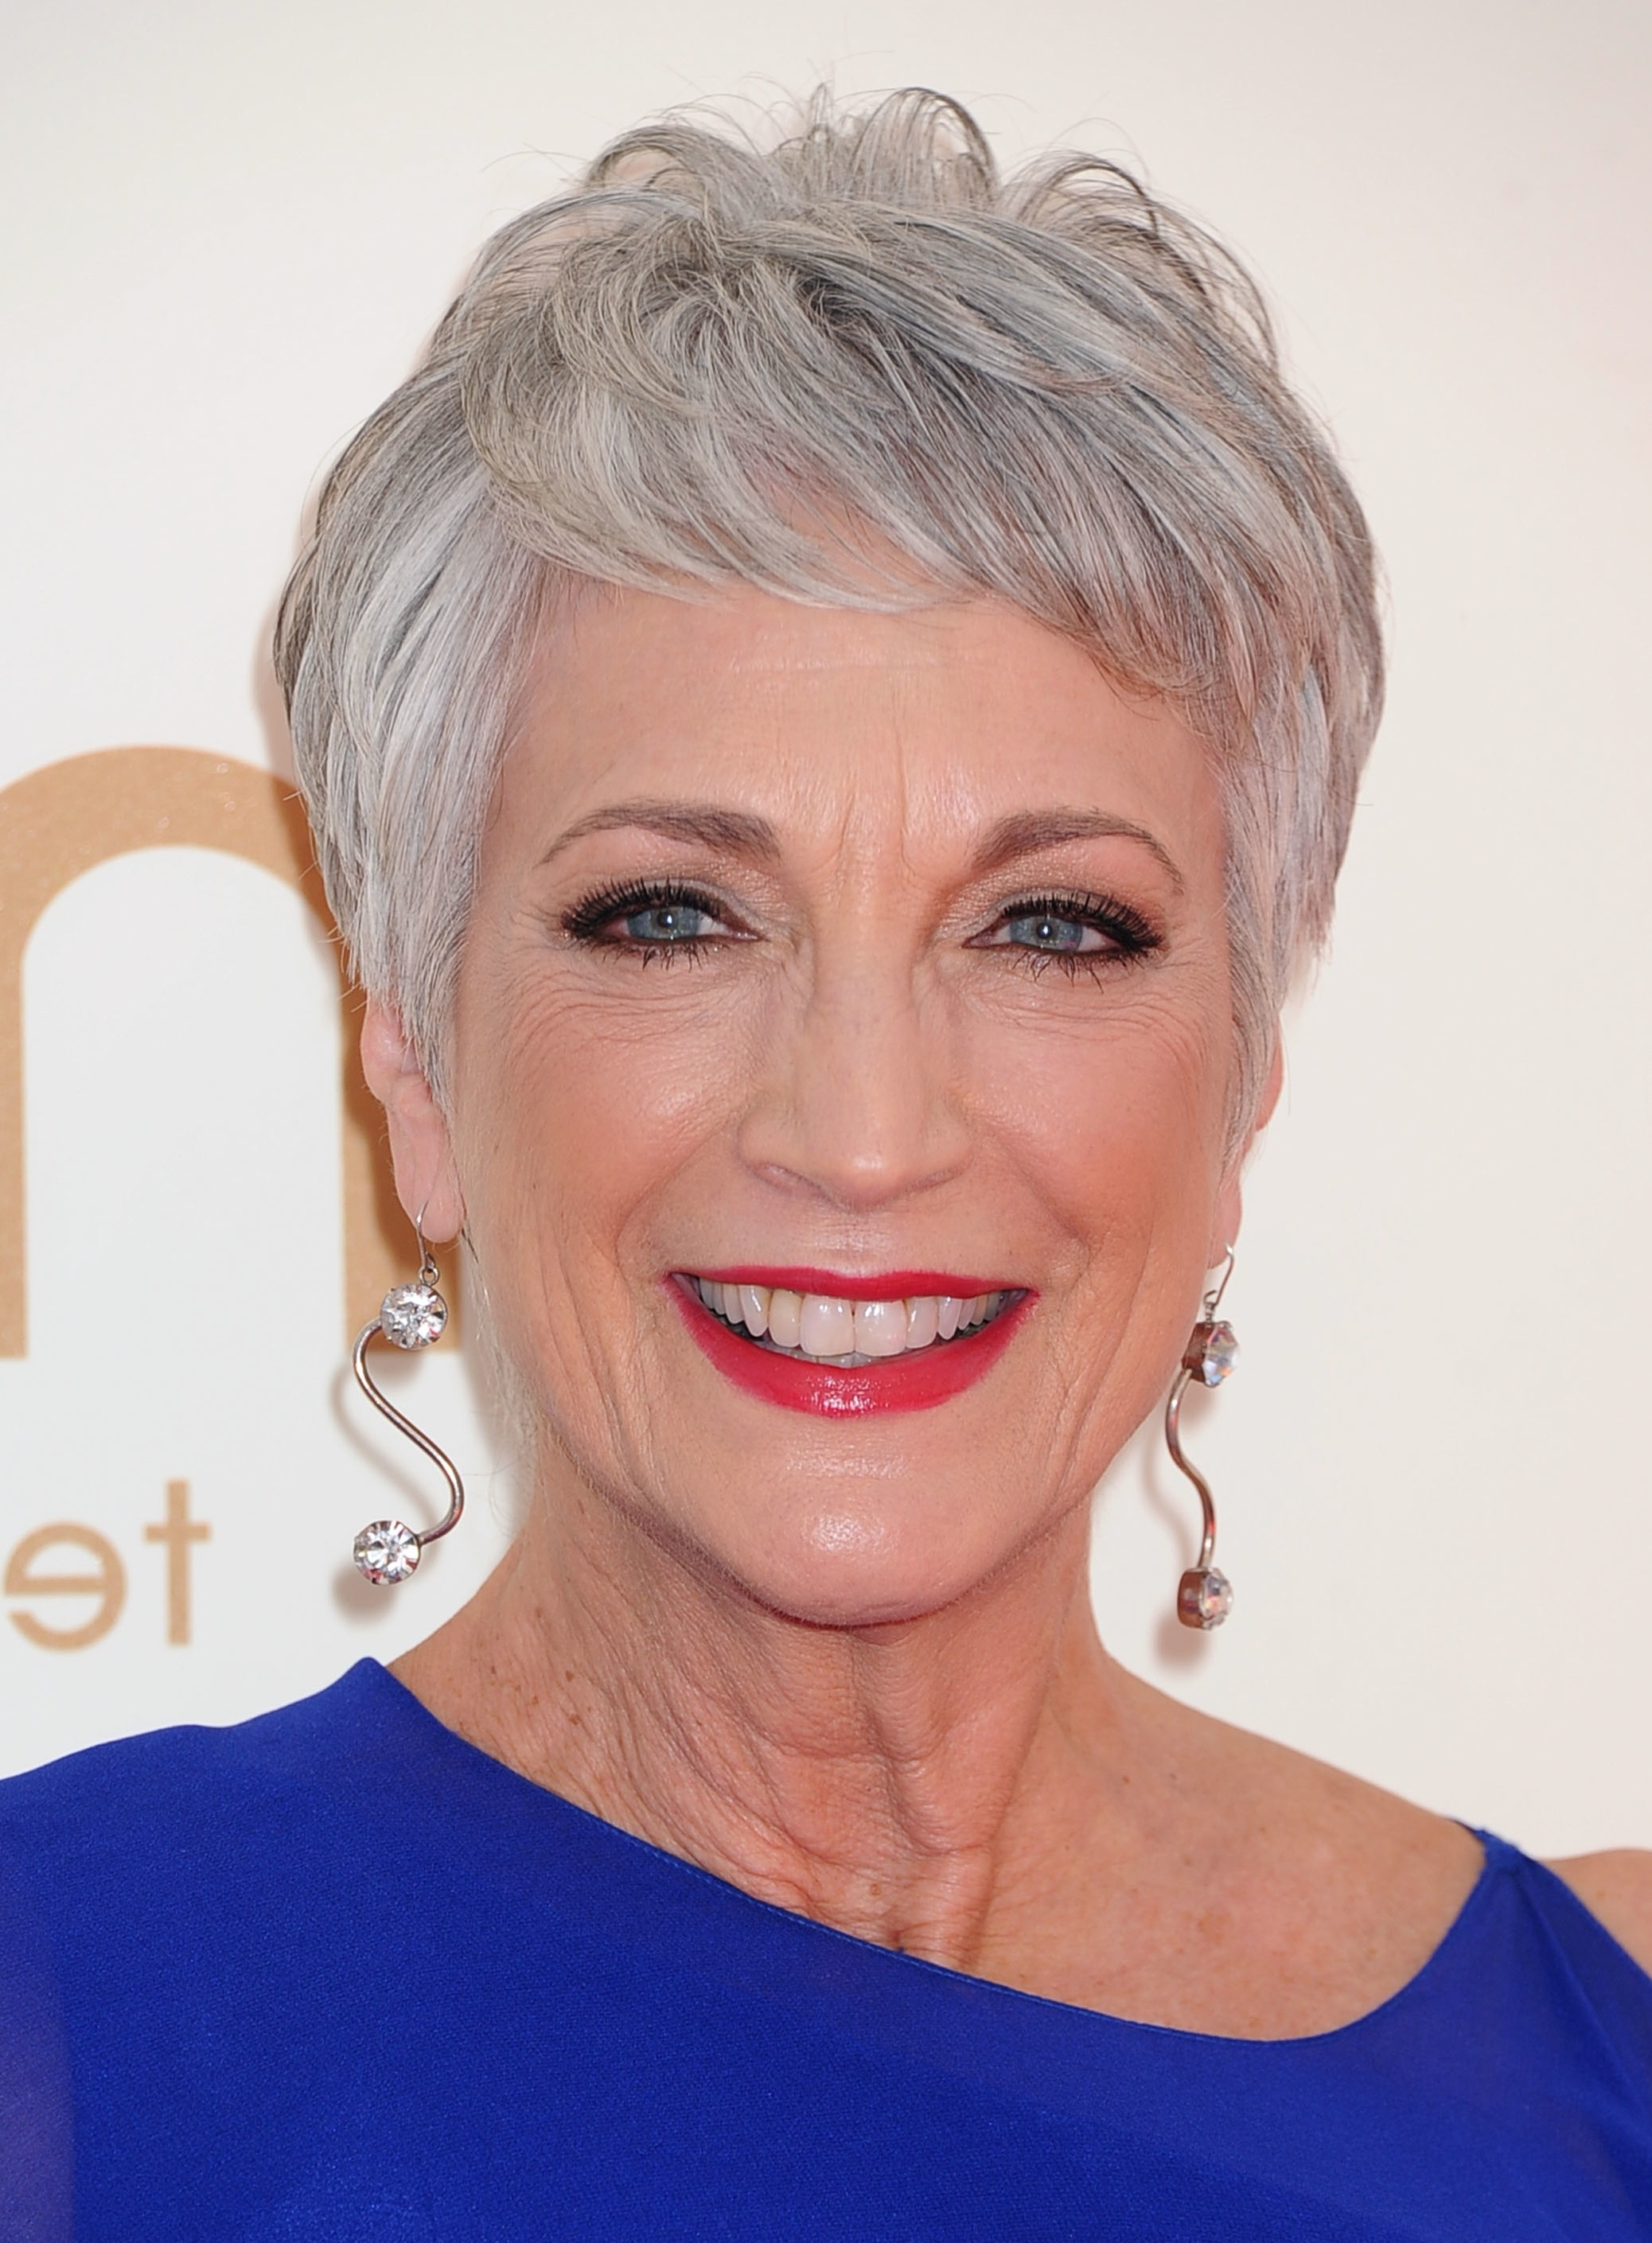 Explore Gallery of Gray Hair Pixie Hairstyles (Showing 4 of 15 Photos)